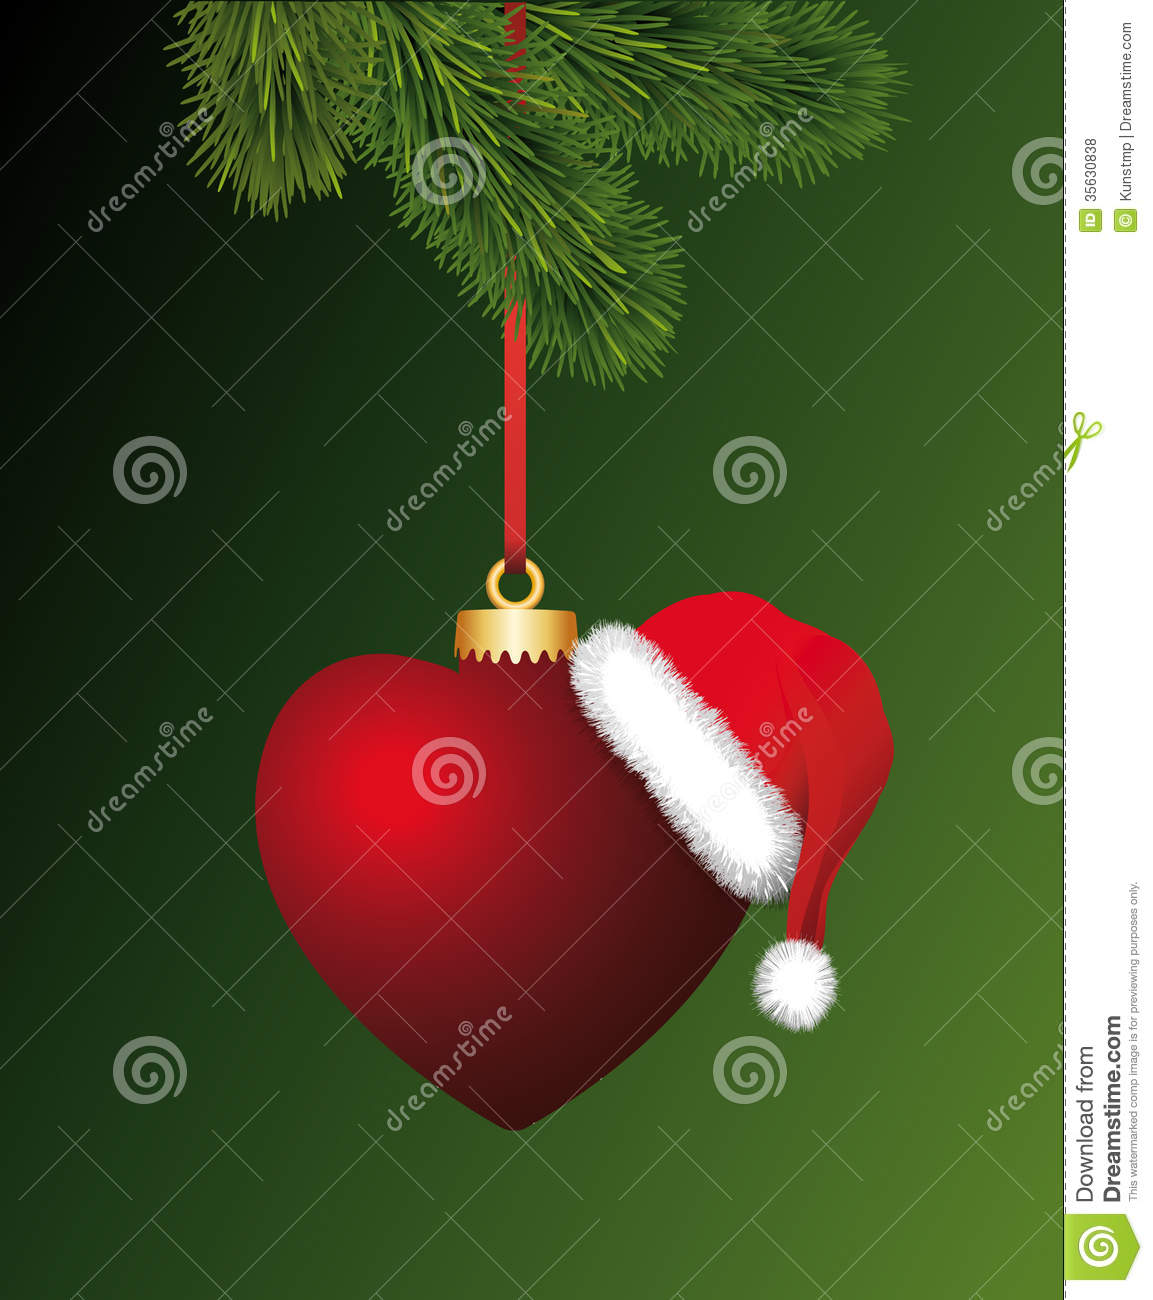 Heart With Santa Claus Hat Hanging On The Christma Stock ...